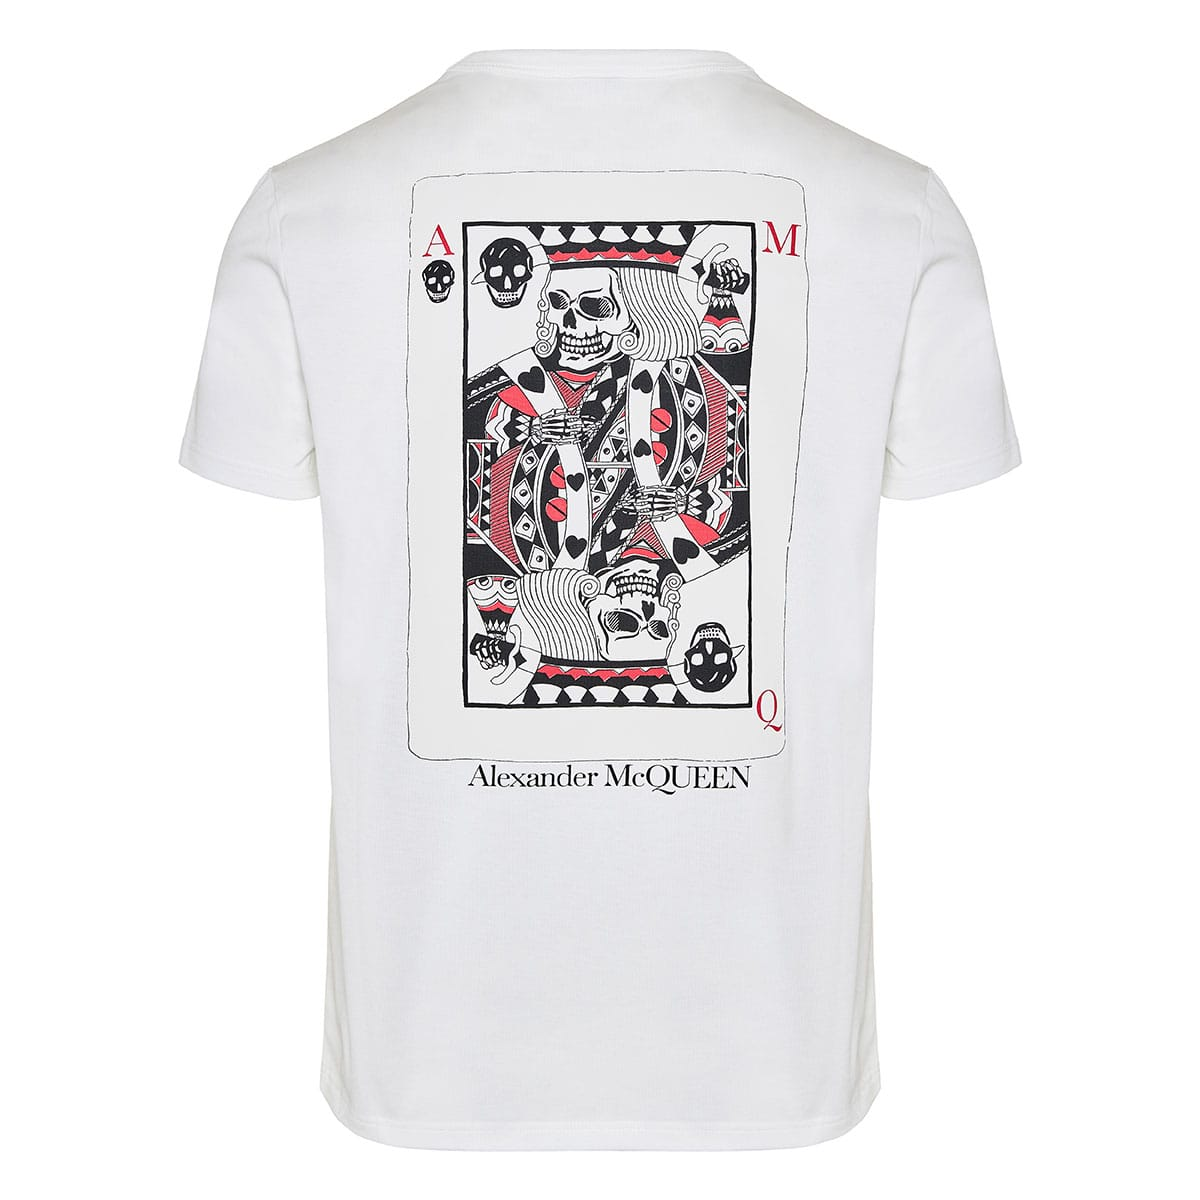 King of Hearts printed t-shirt